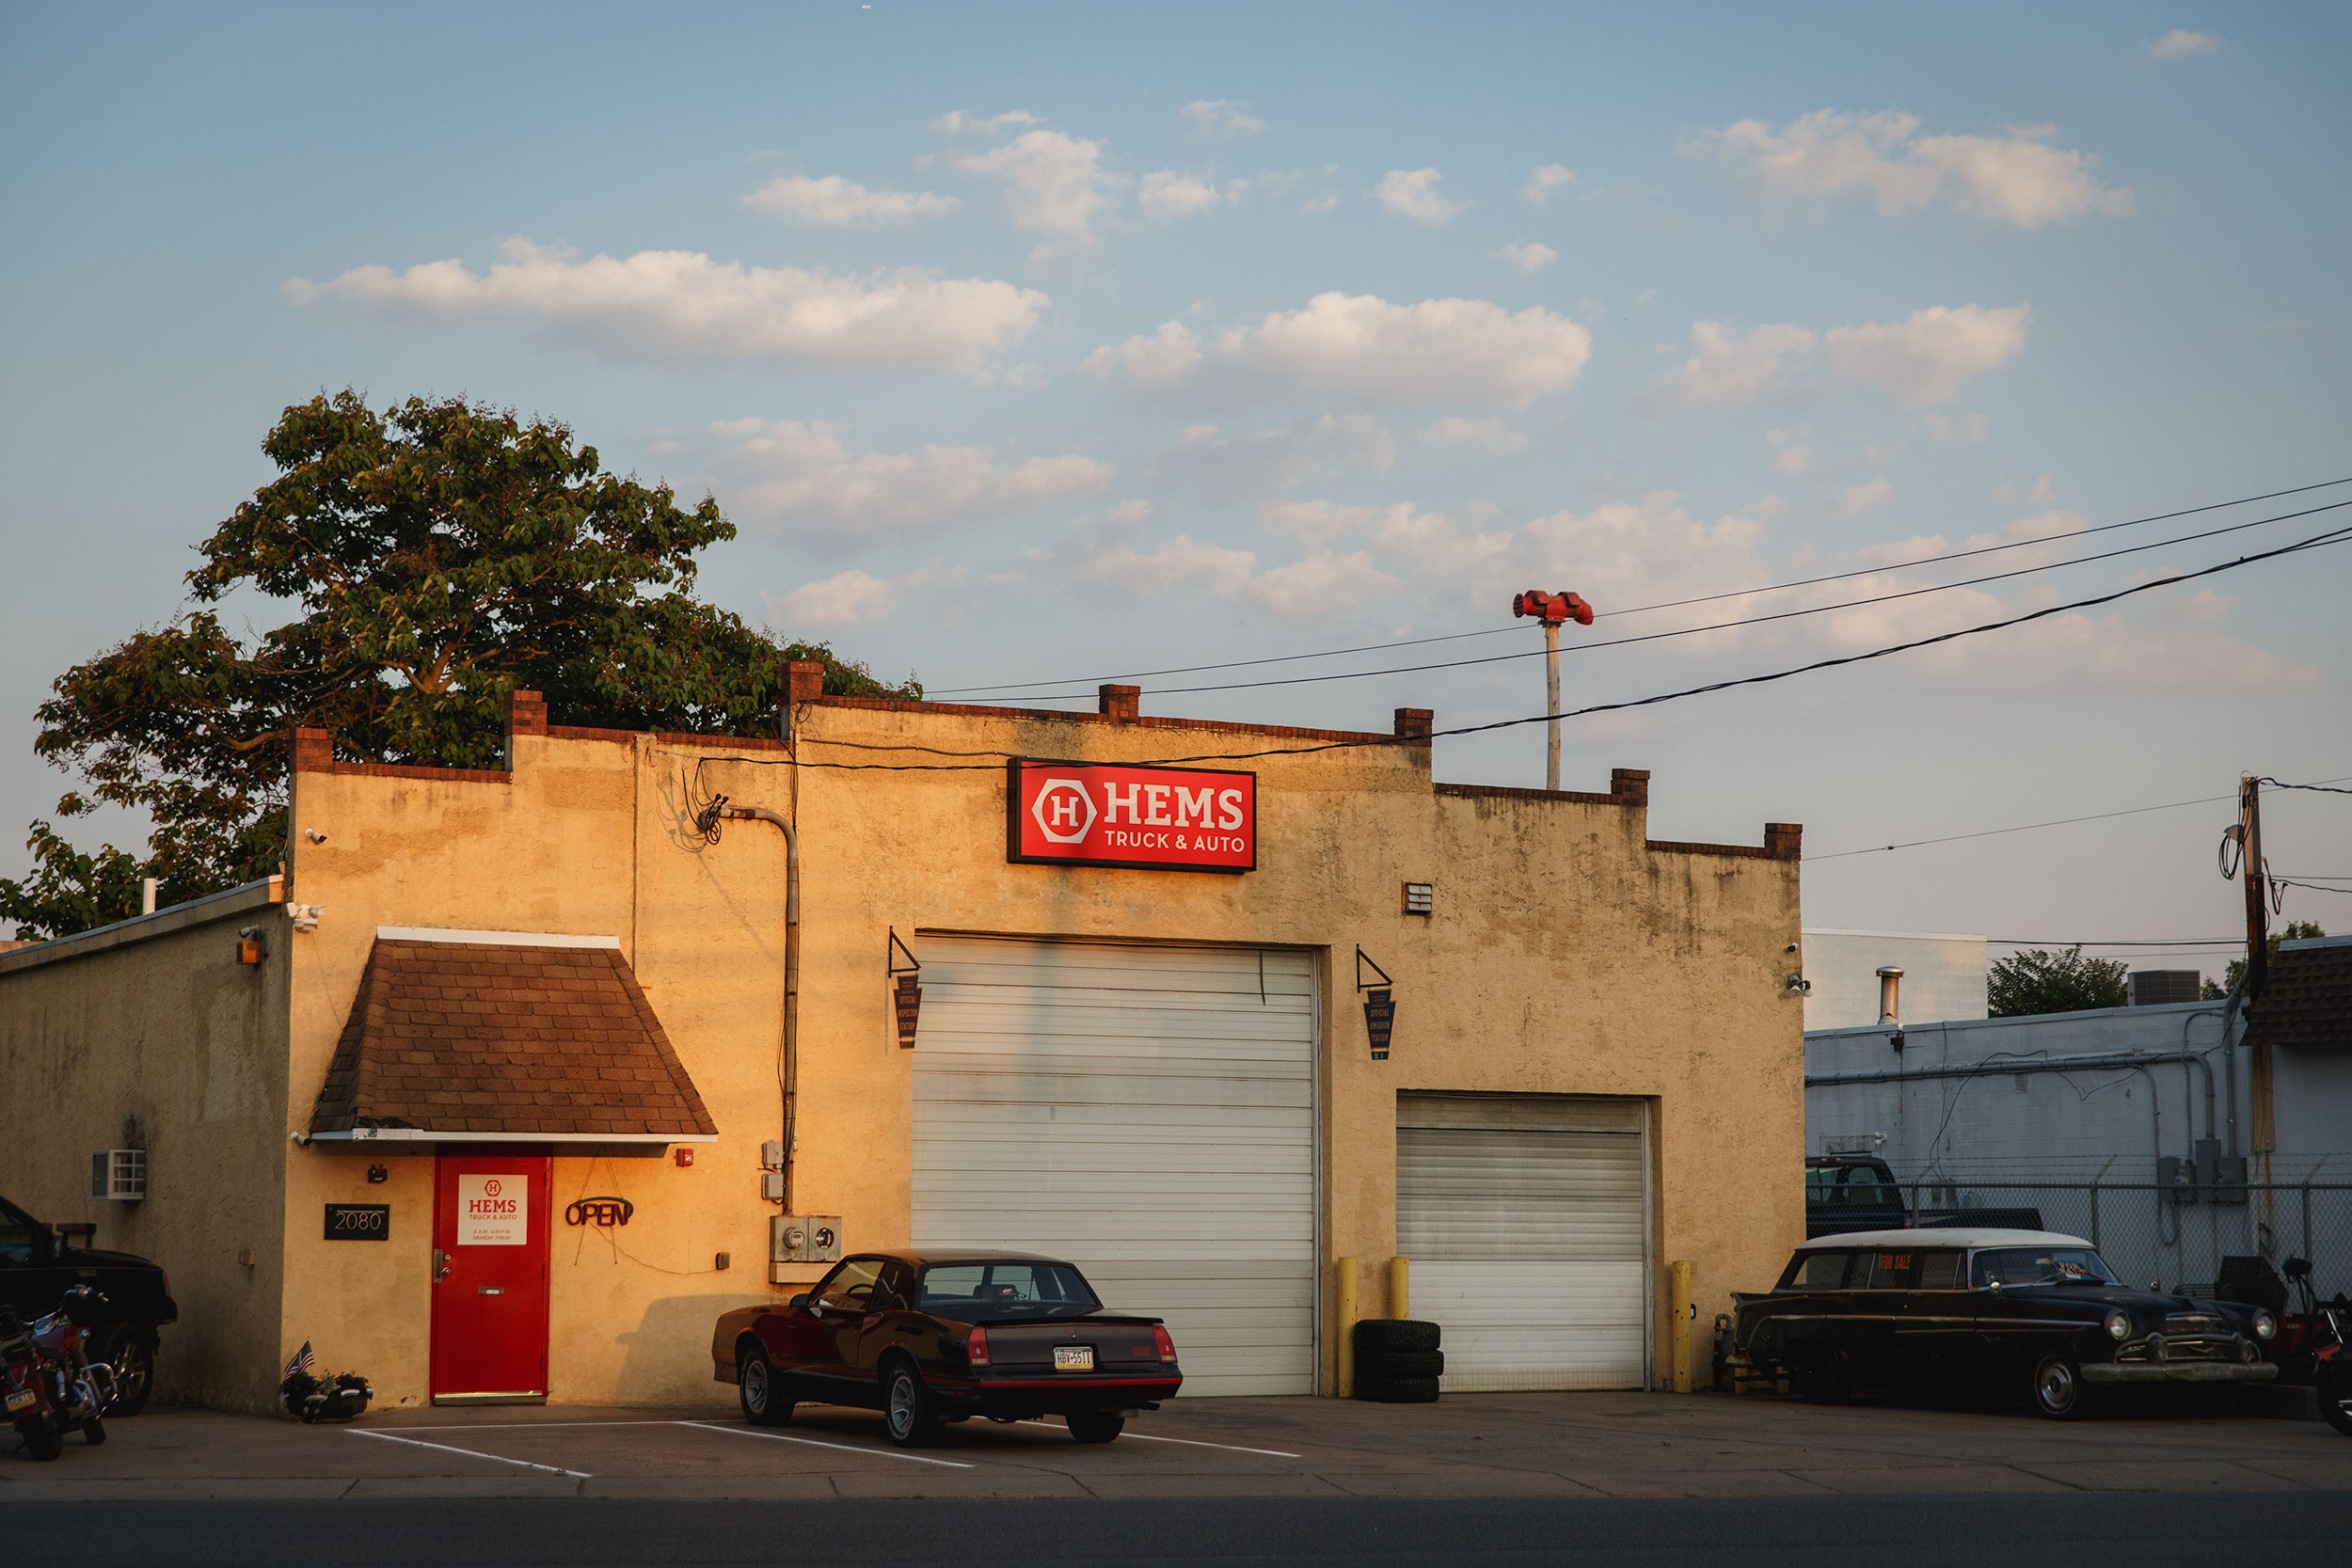 business_auto_mechanic_garage_hems-0064